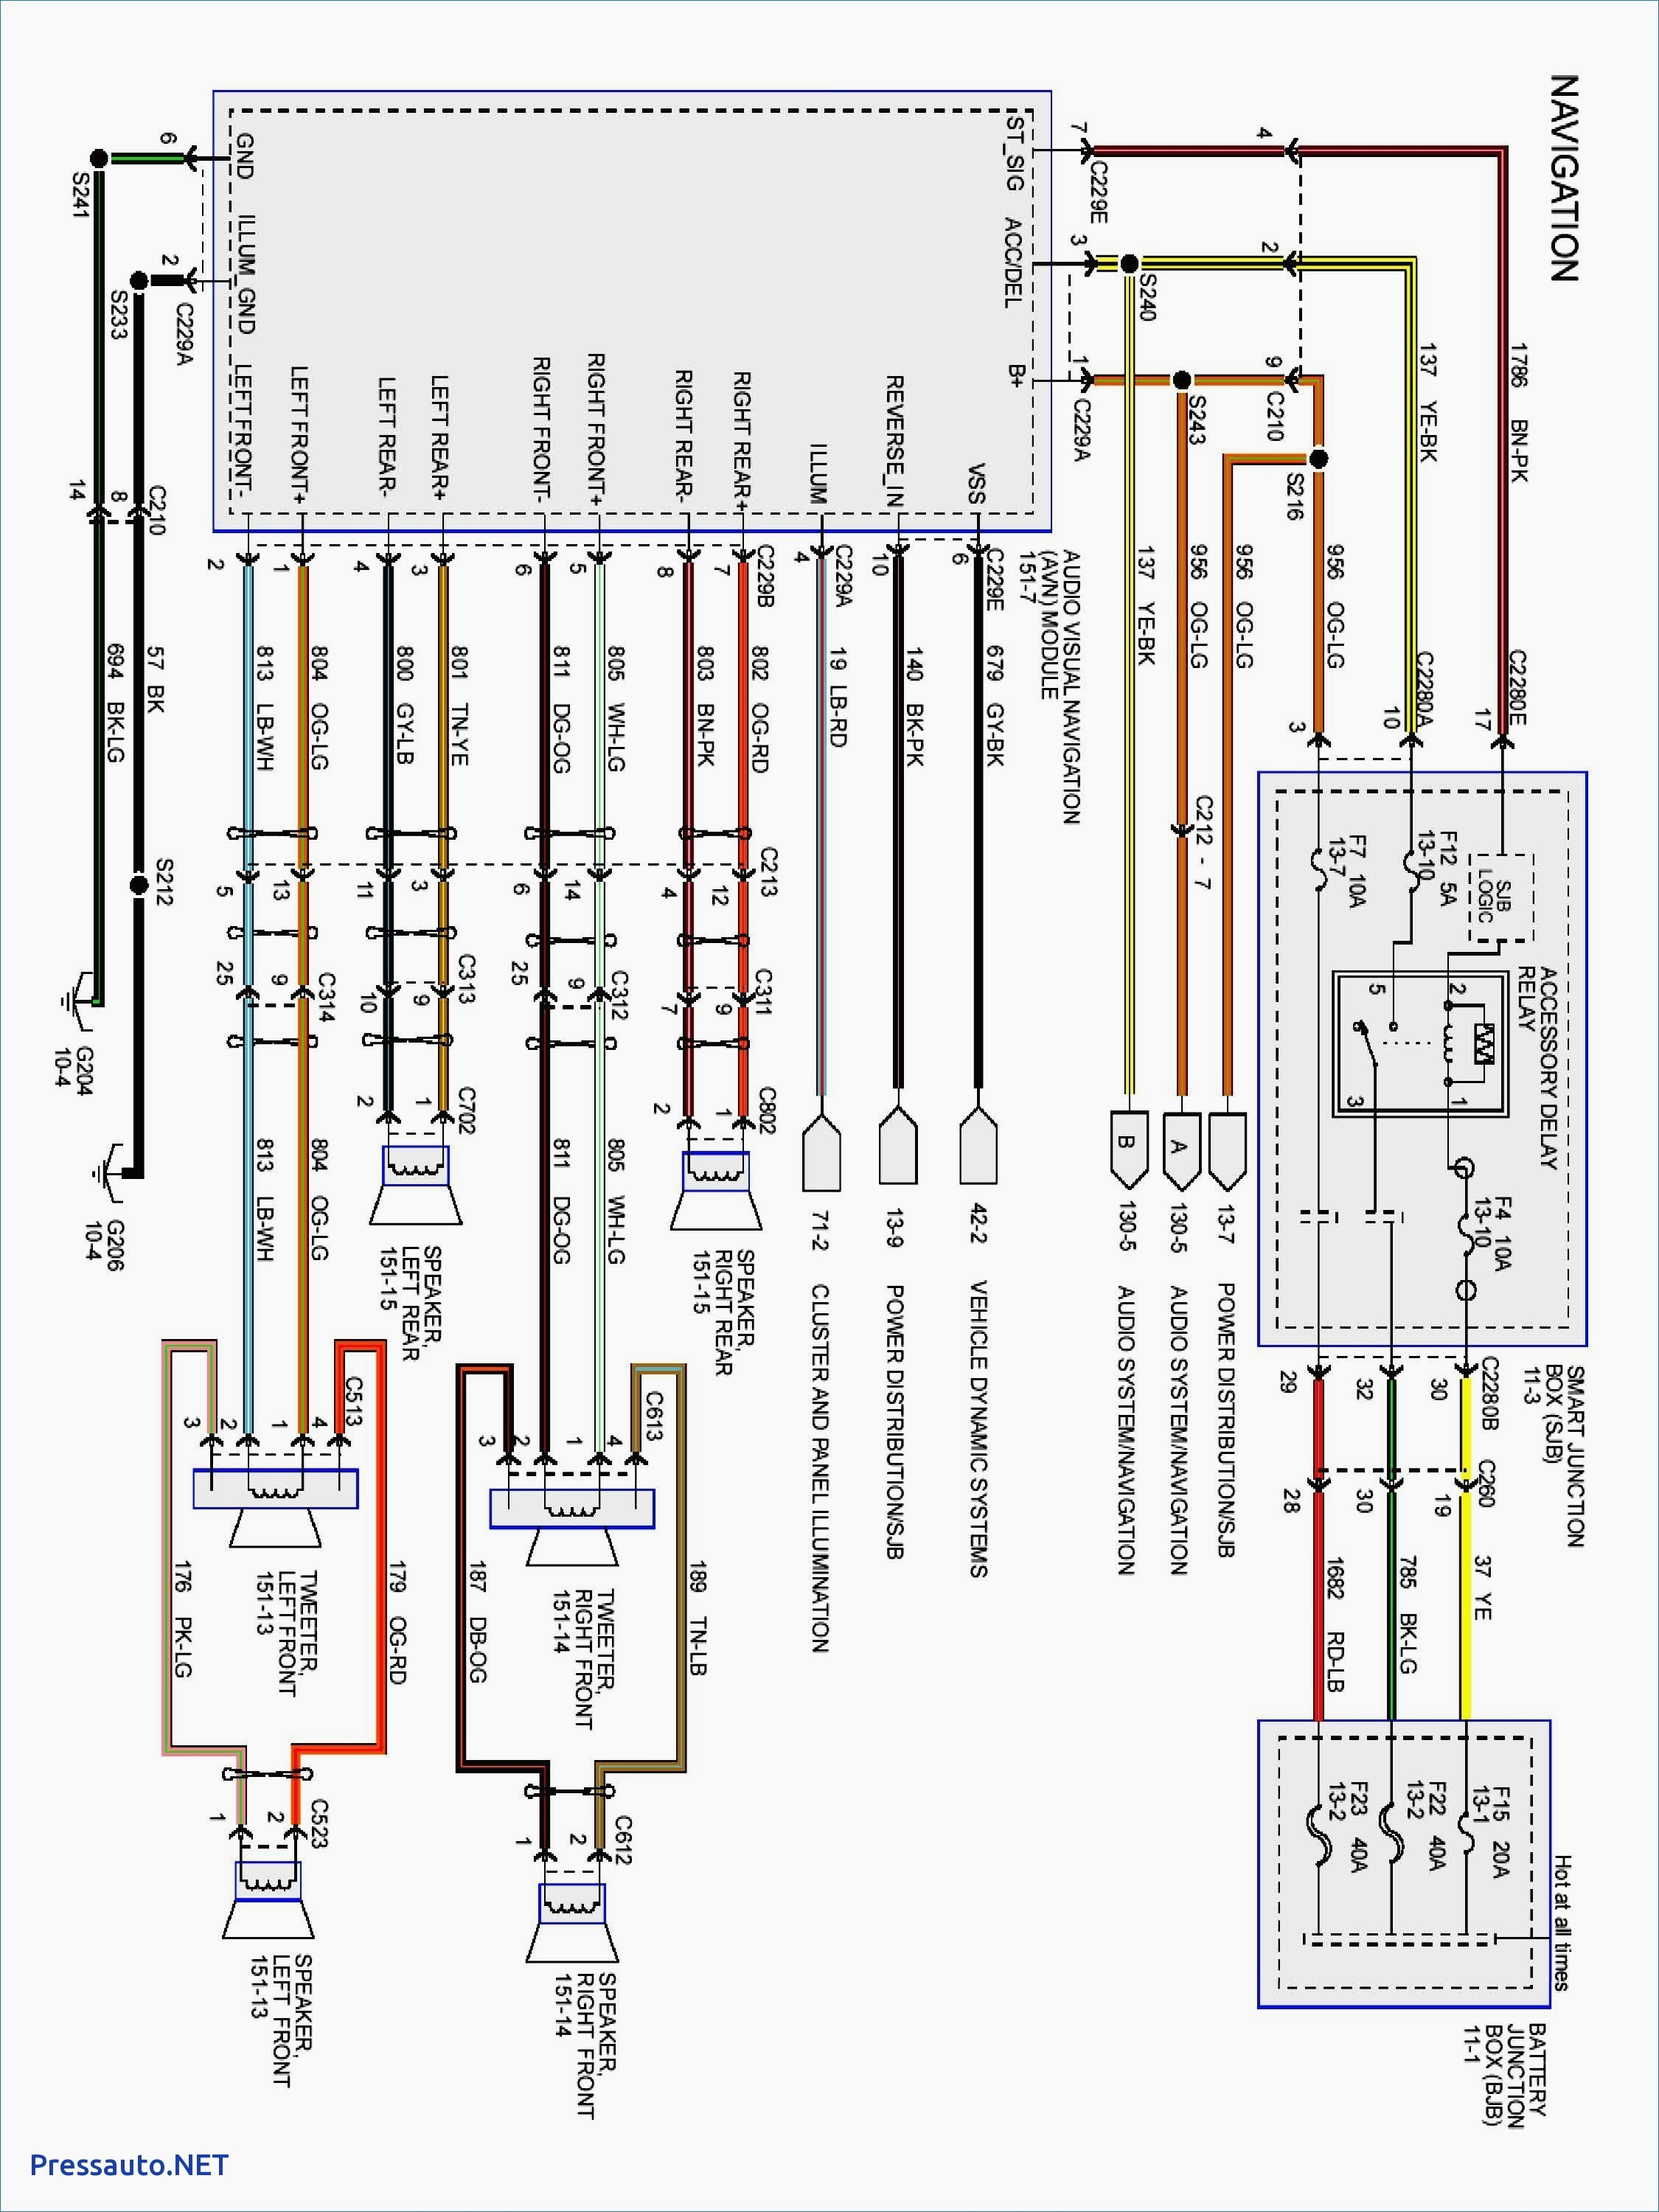 Ford F250 Trailer Wiring Diagram from detoxicrecenze.com